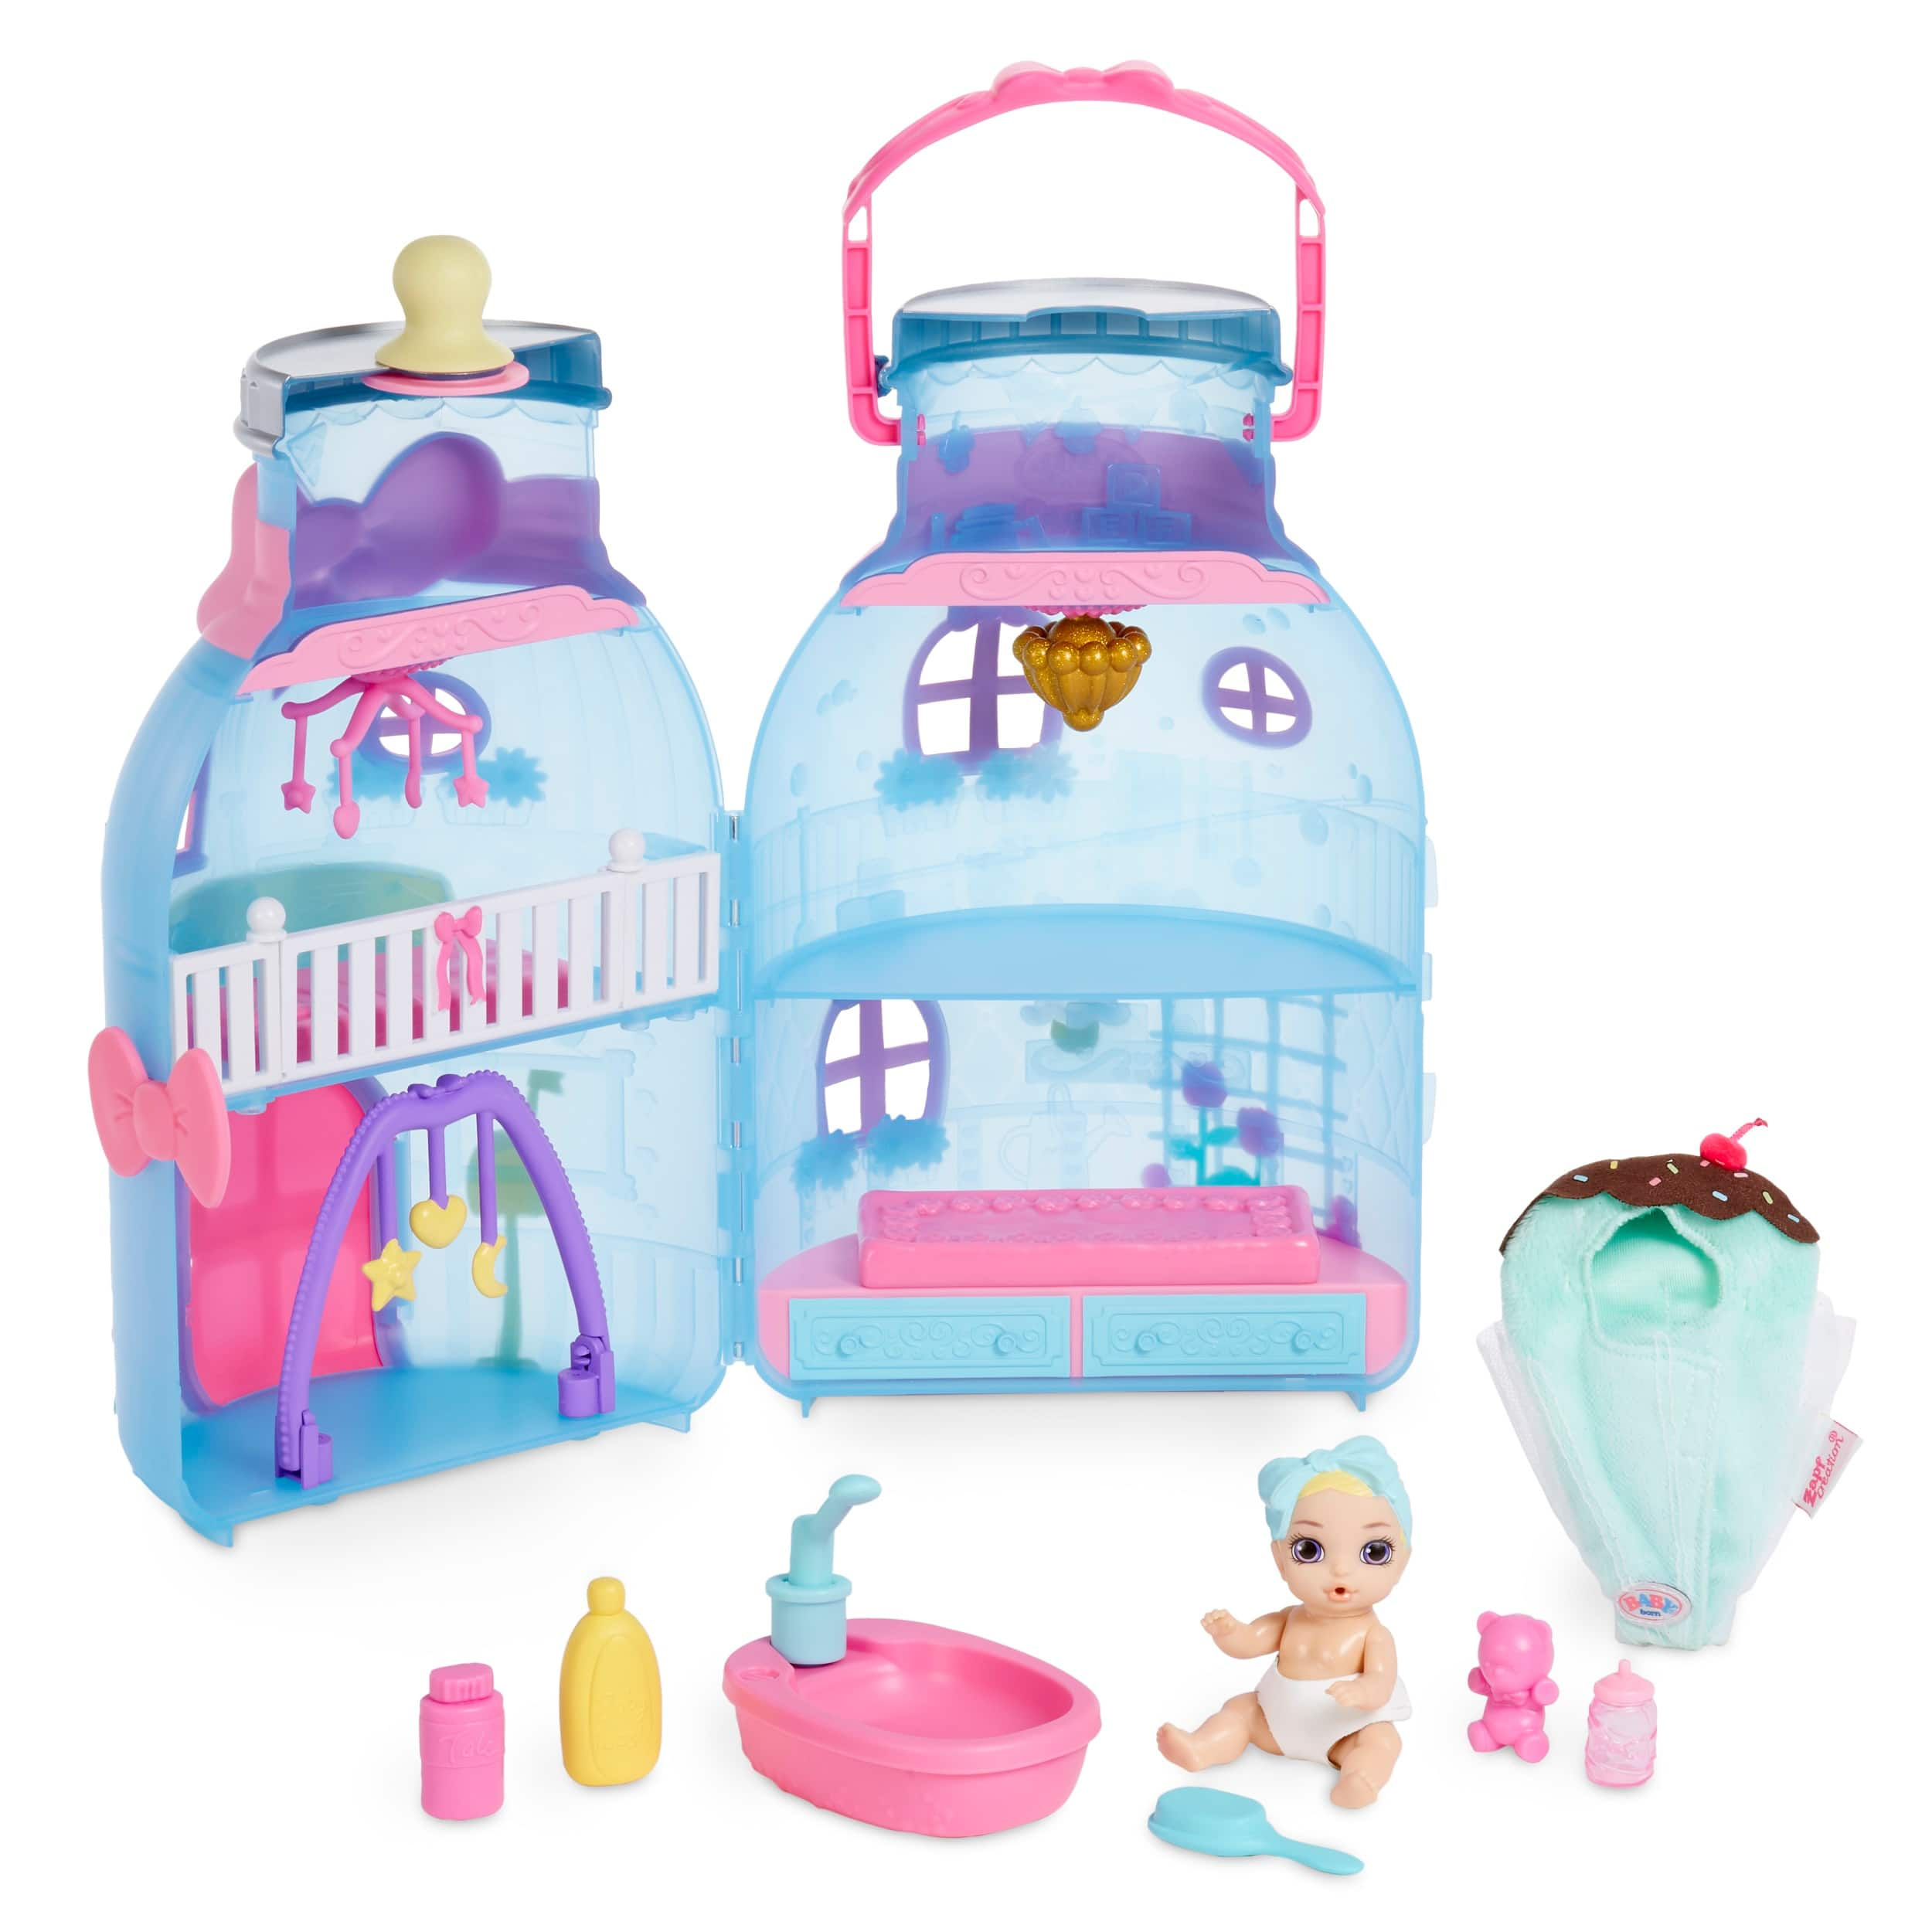 Baby Born Surprise Baby Bottle House w/ 20+ Surprises $15.98 + Free Shipping on orders $35+